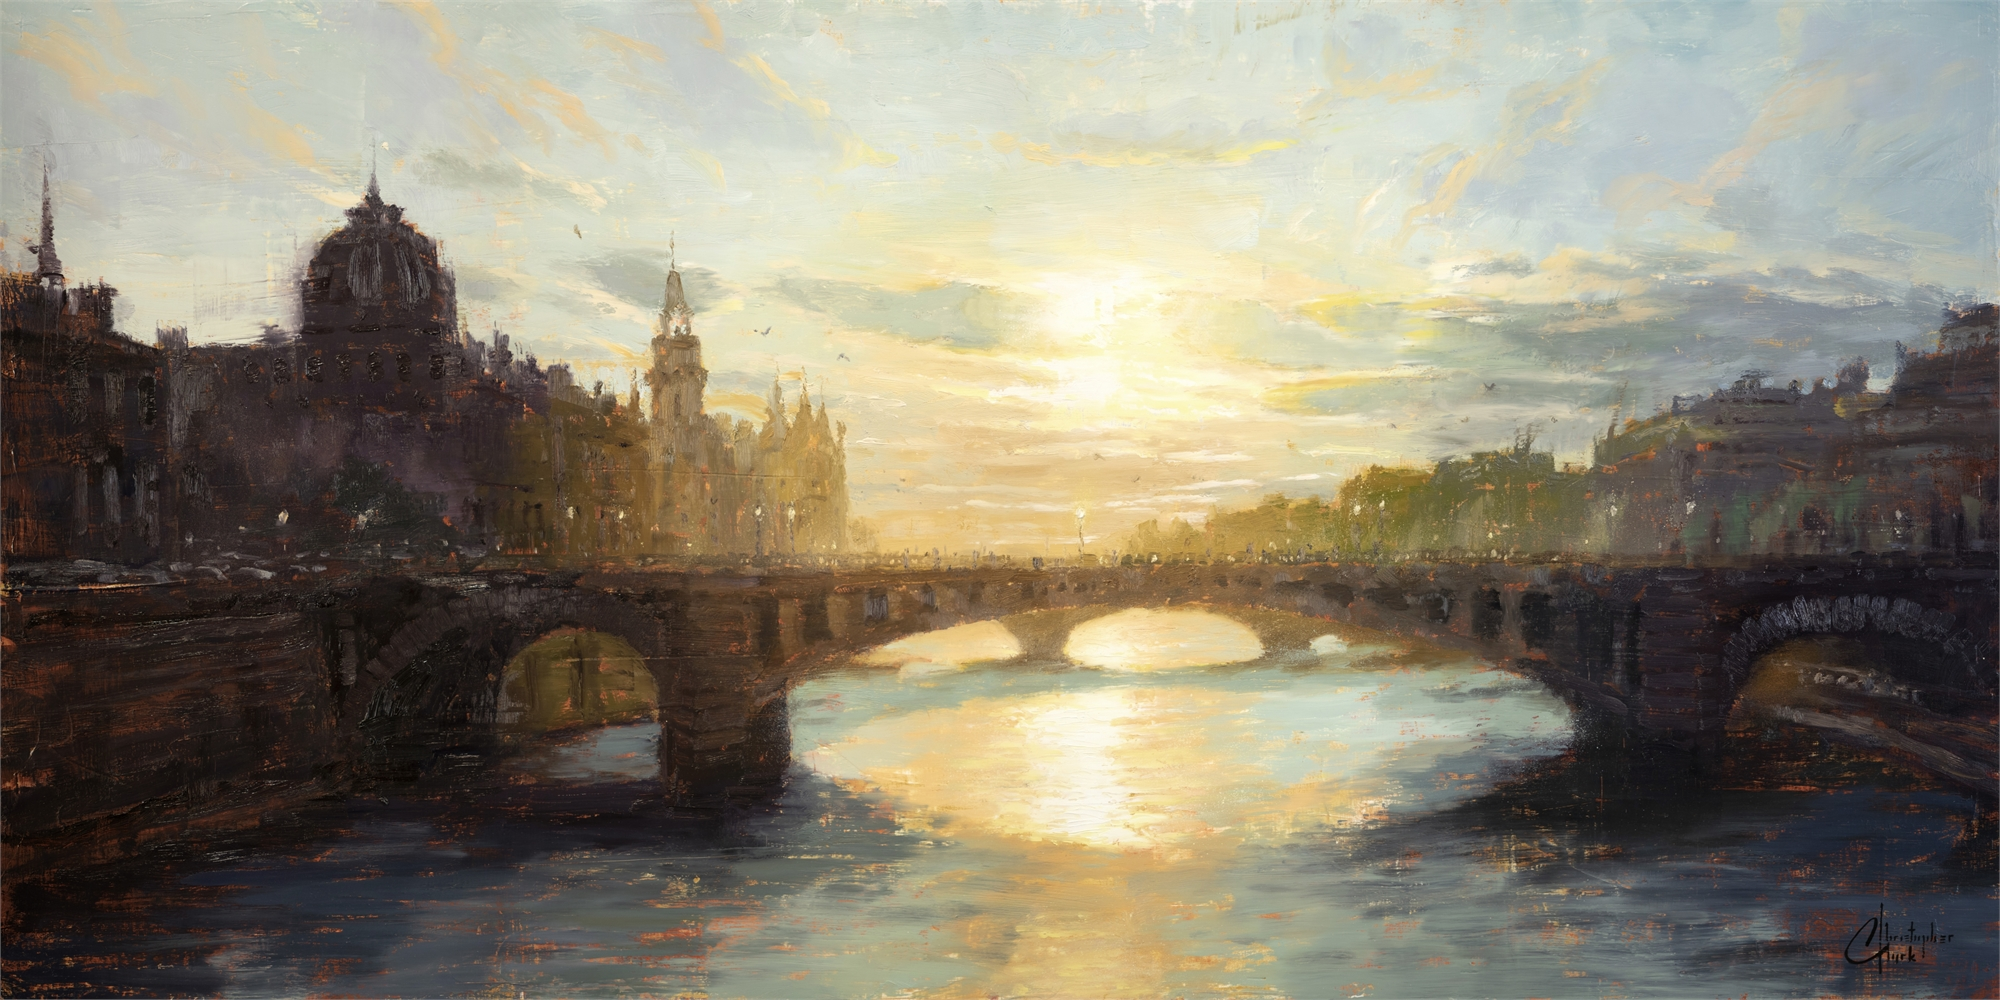 Paris - Sunset over the Seine by Christopher Clark